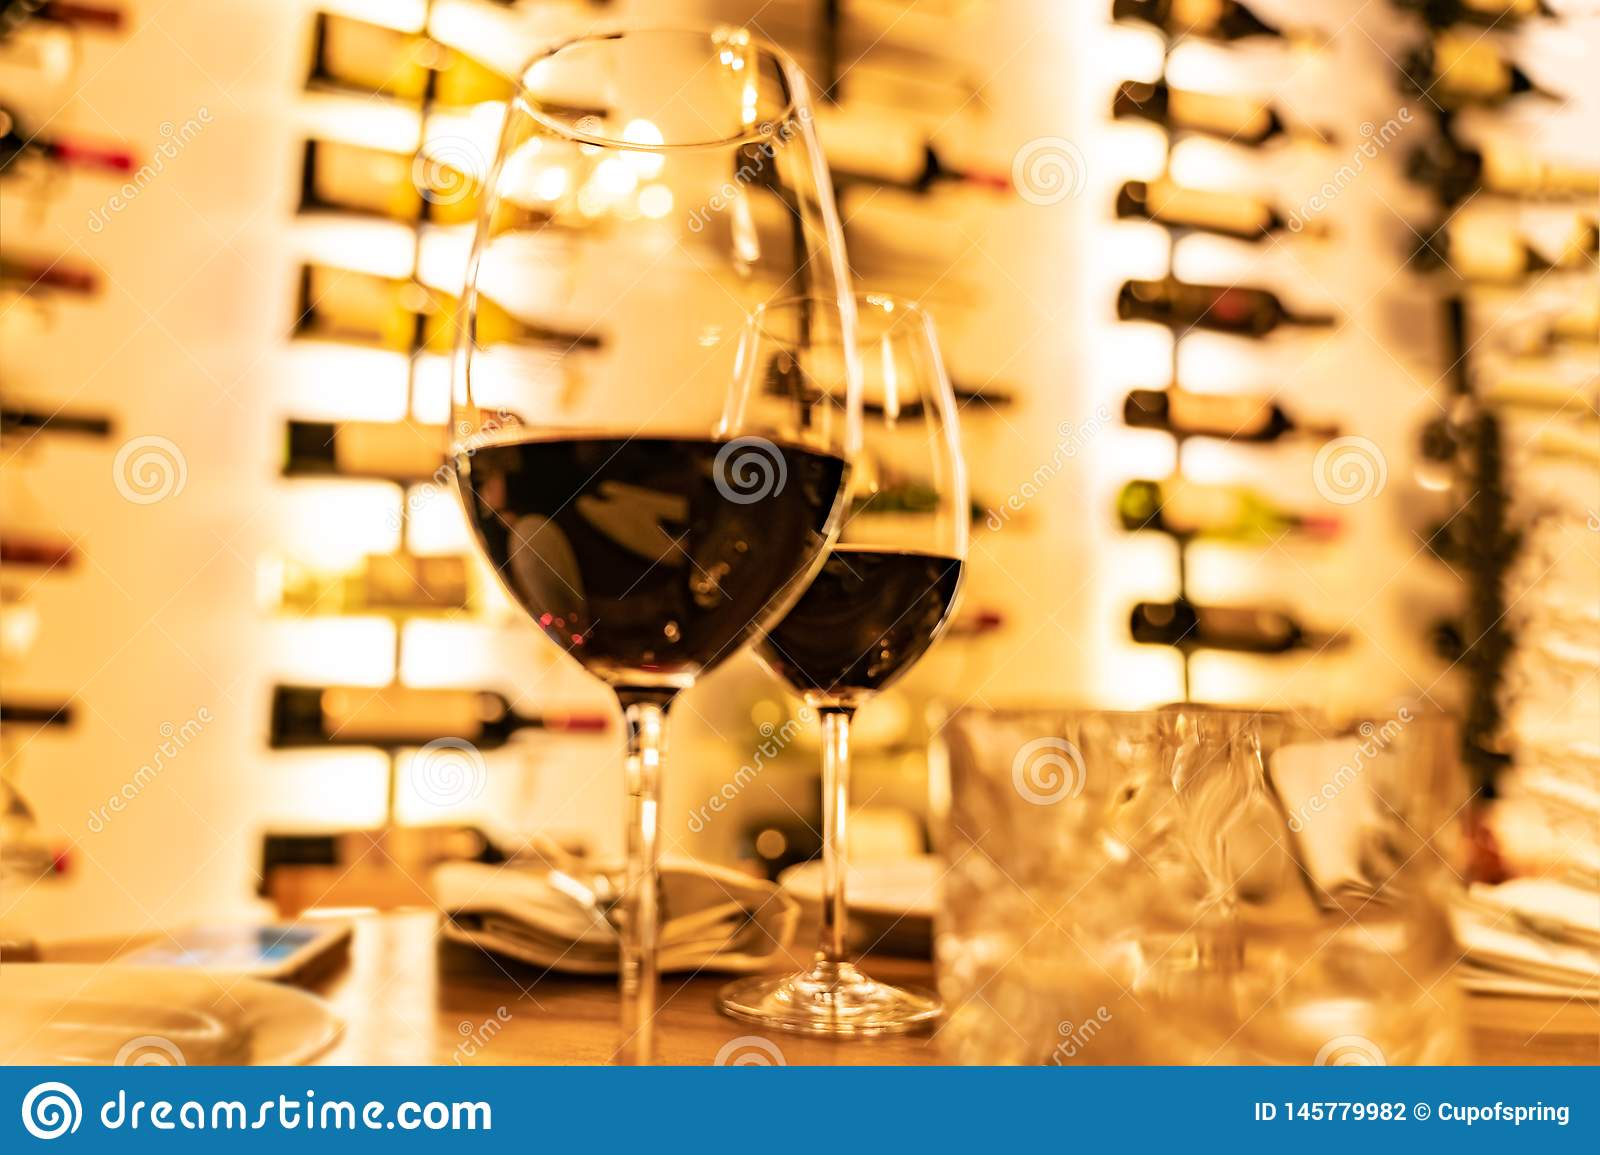 Red wine glasses on a wooden plank with defocused bottles rack in the background